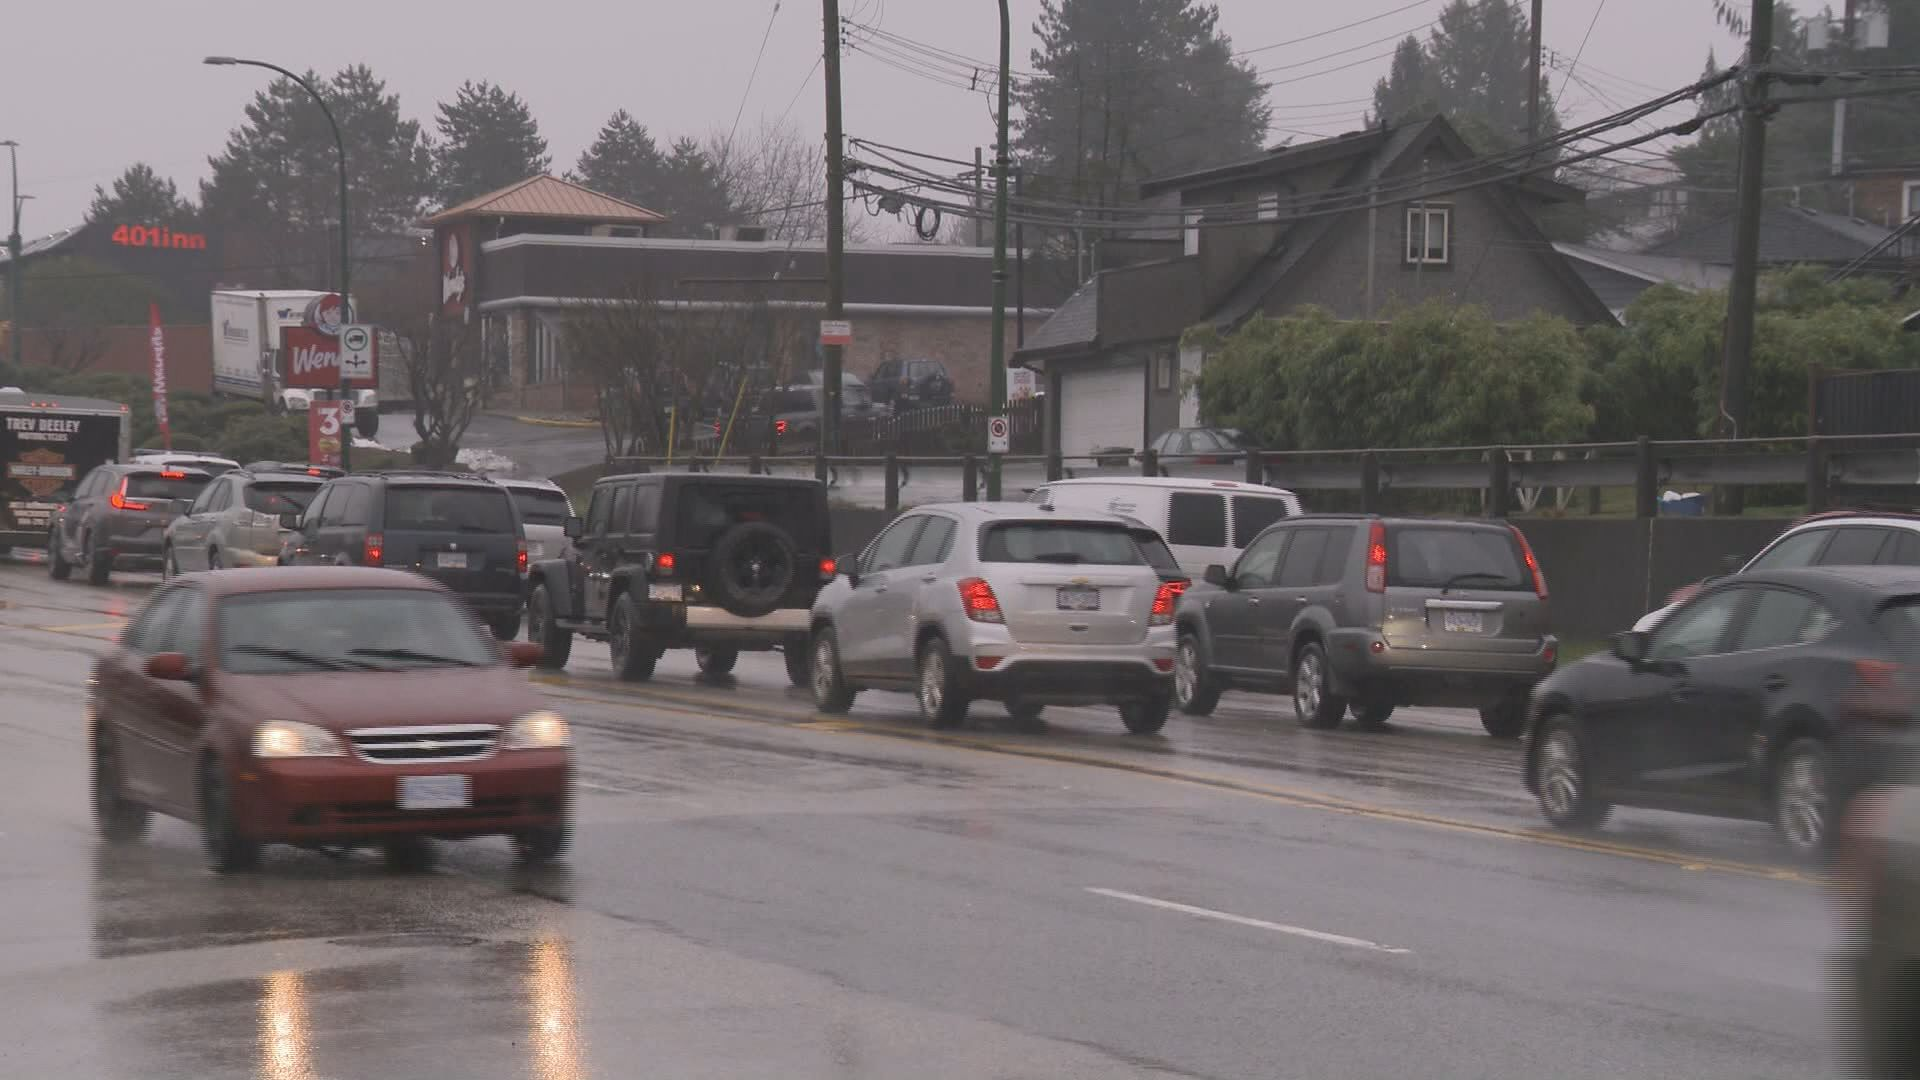 UBC study says living near busy roads increases risk from disease